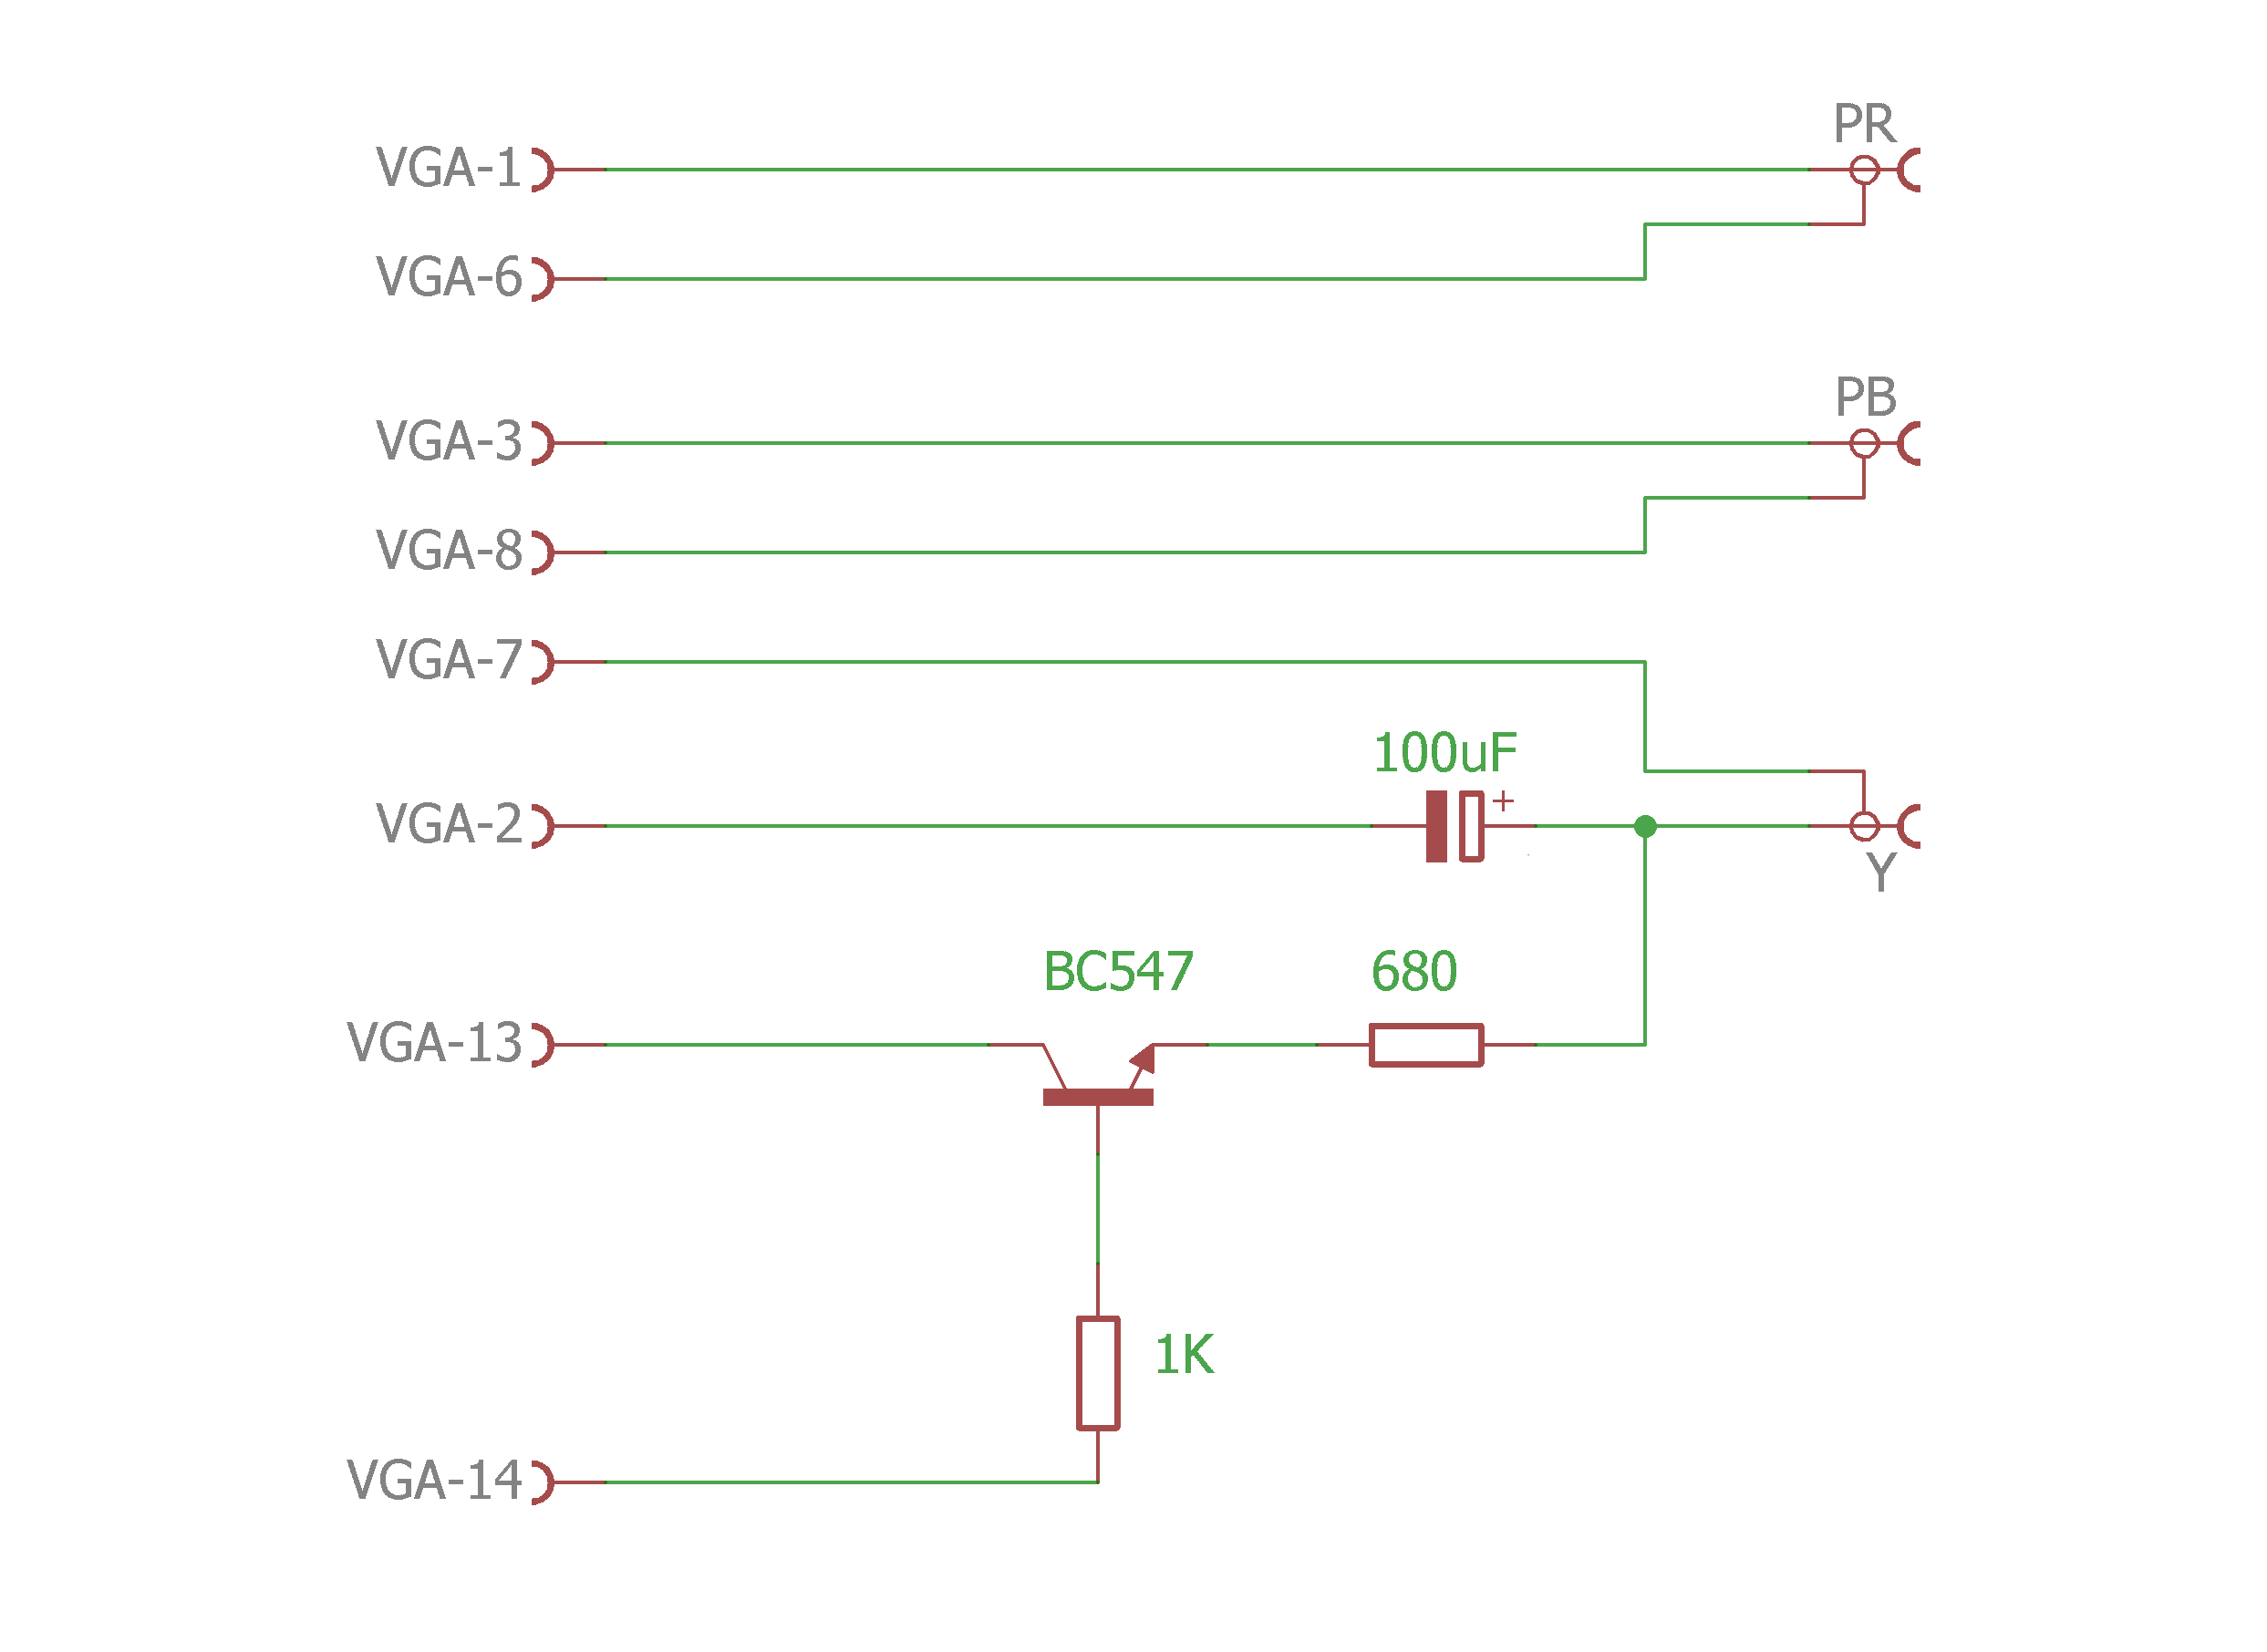 New Feature Ypbpr Rgsb Output Atari Forum S Video Adapter To Vga Schematic I Would Imagine This Only Works For The Mist It Is Not A General Component Converter Could Be Good Idea Mount Little Pcb That Can